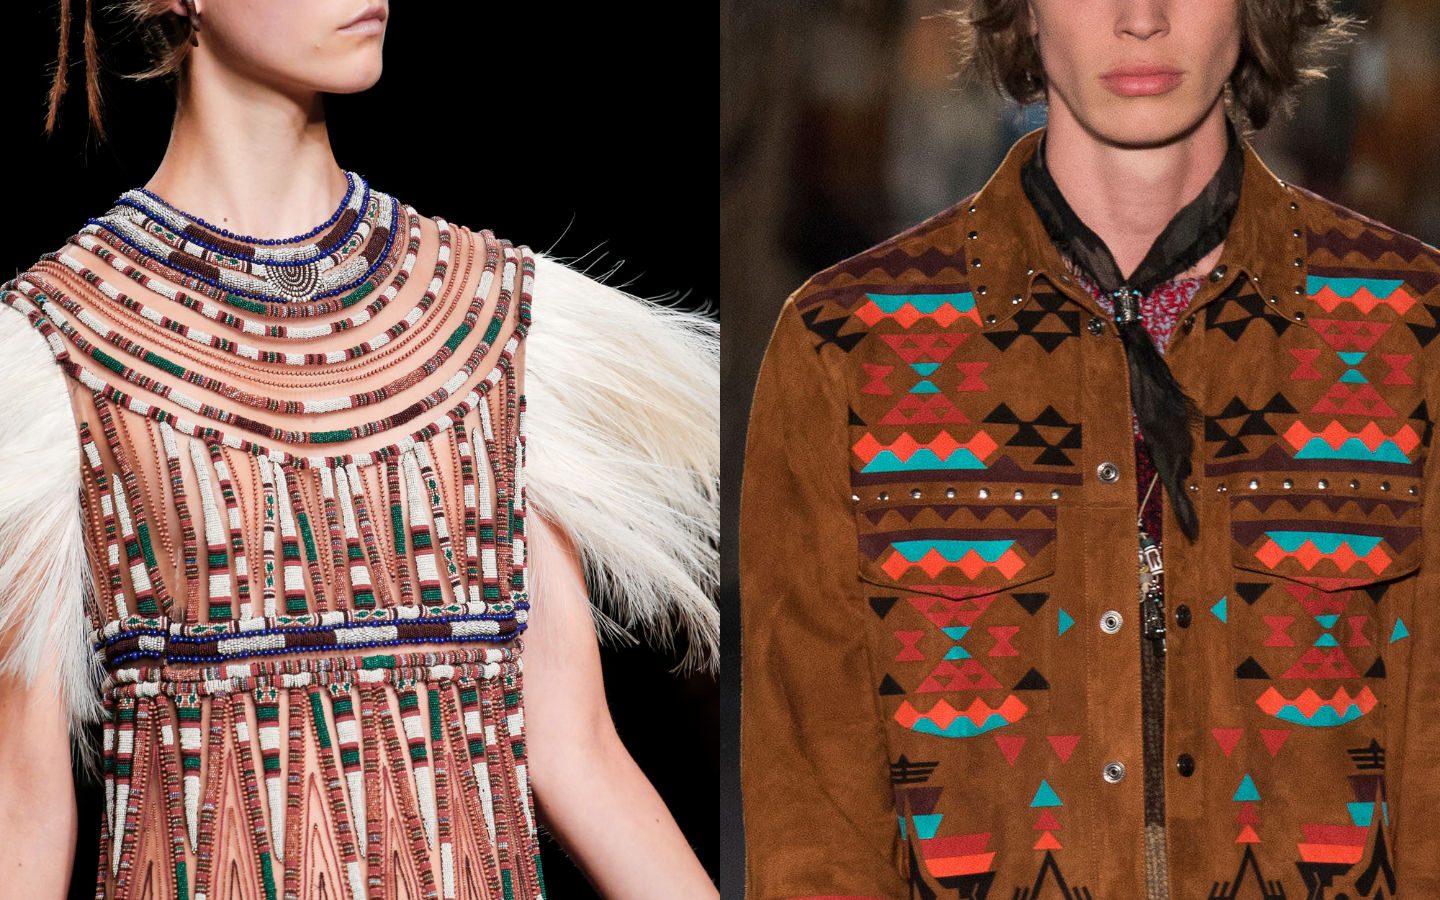 Cutting a fine line between cultural appropriation and appreciation